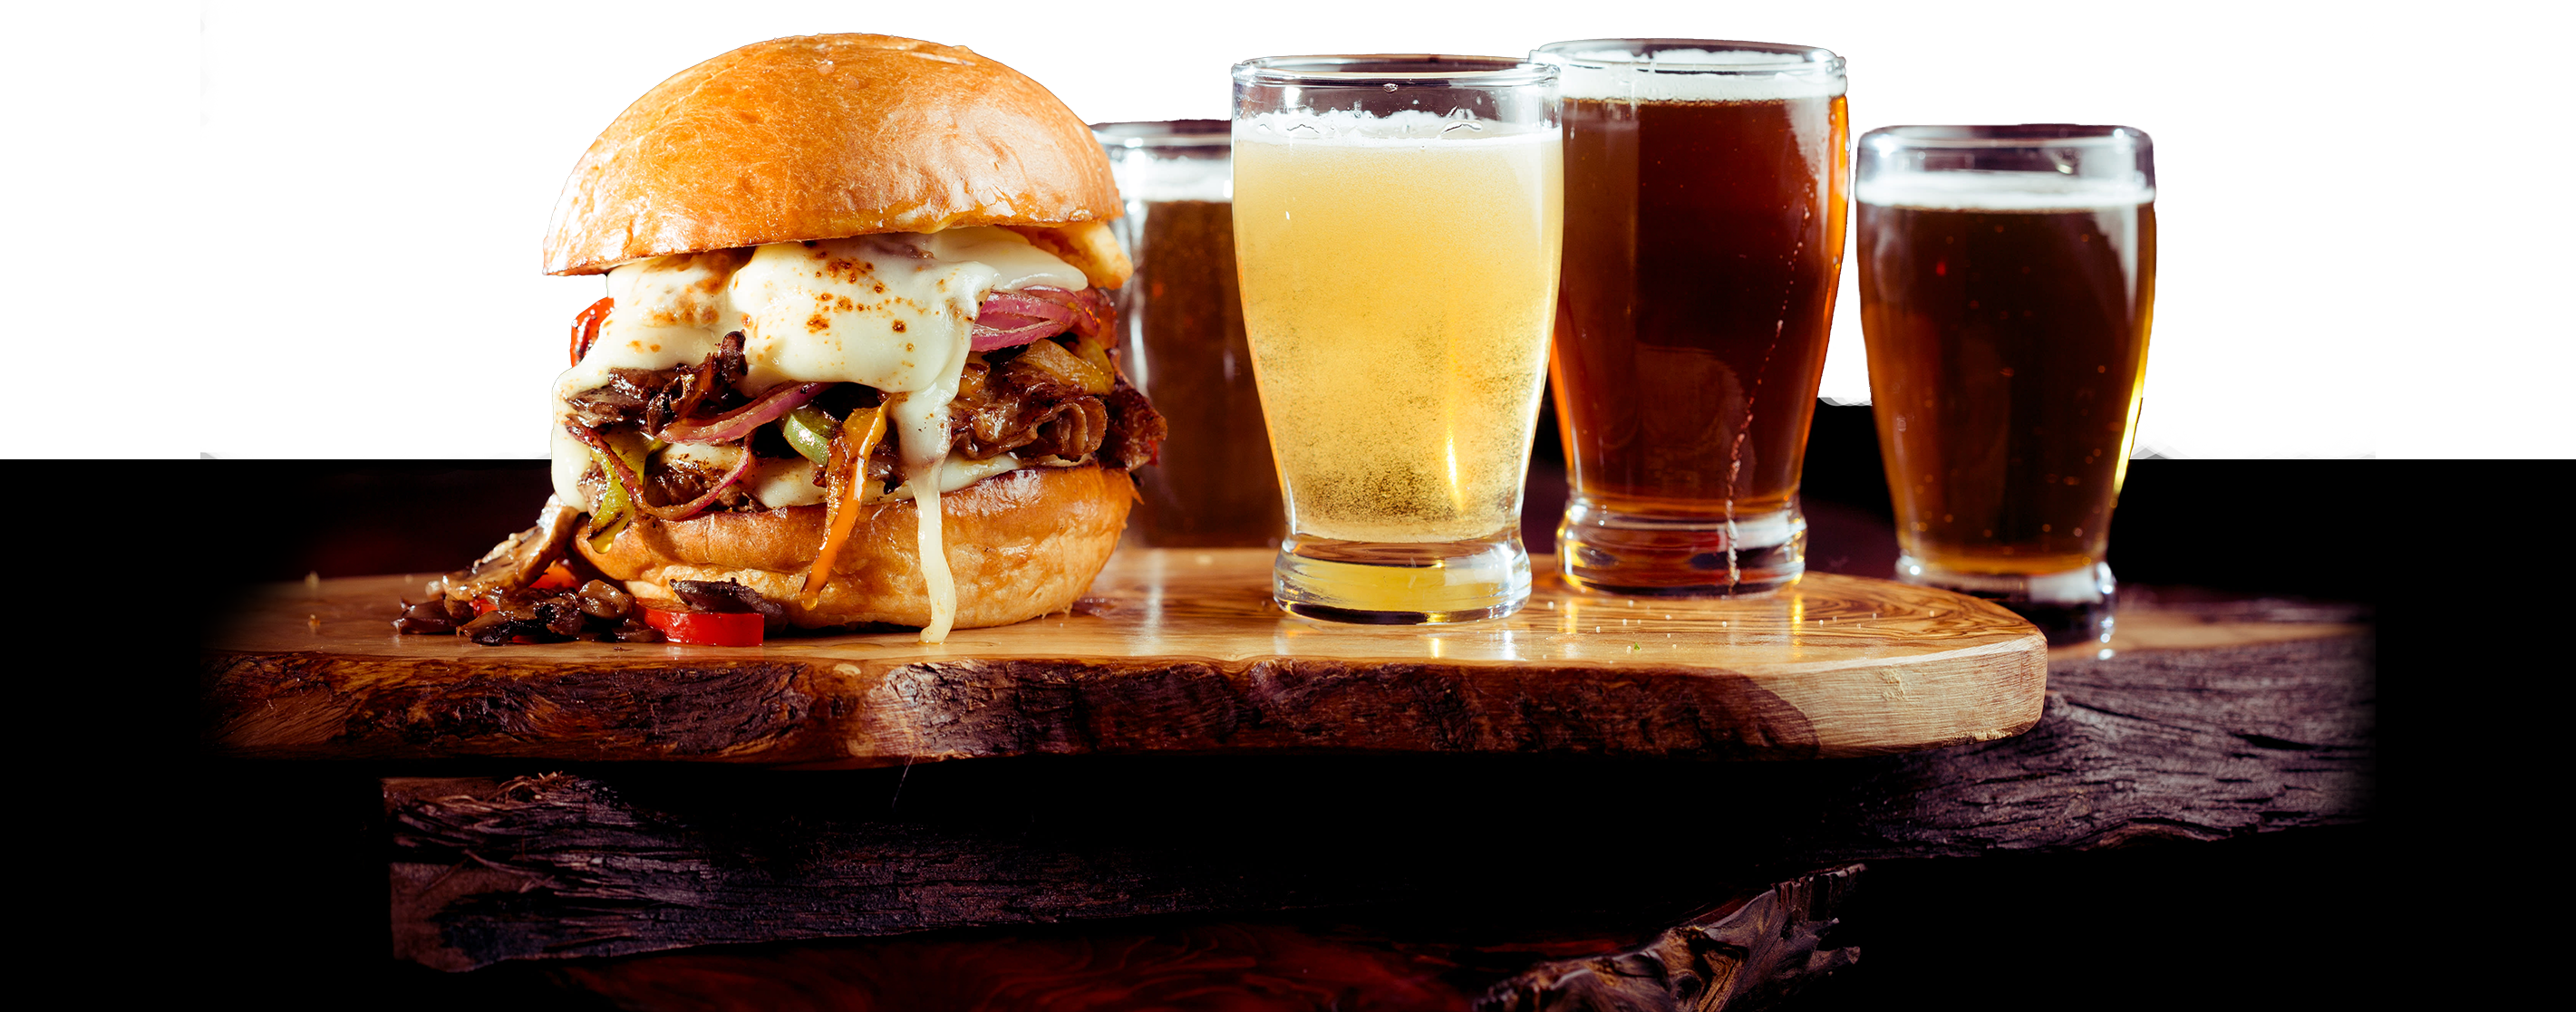 burger with melted cheese and assorted glasses of beer